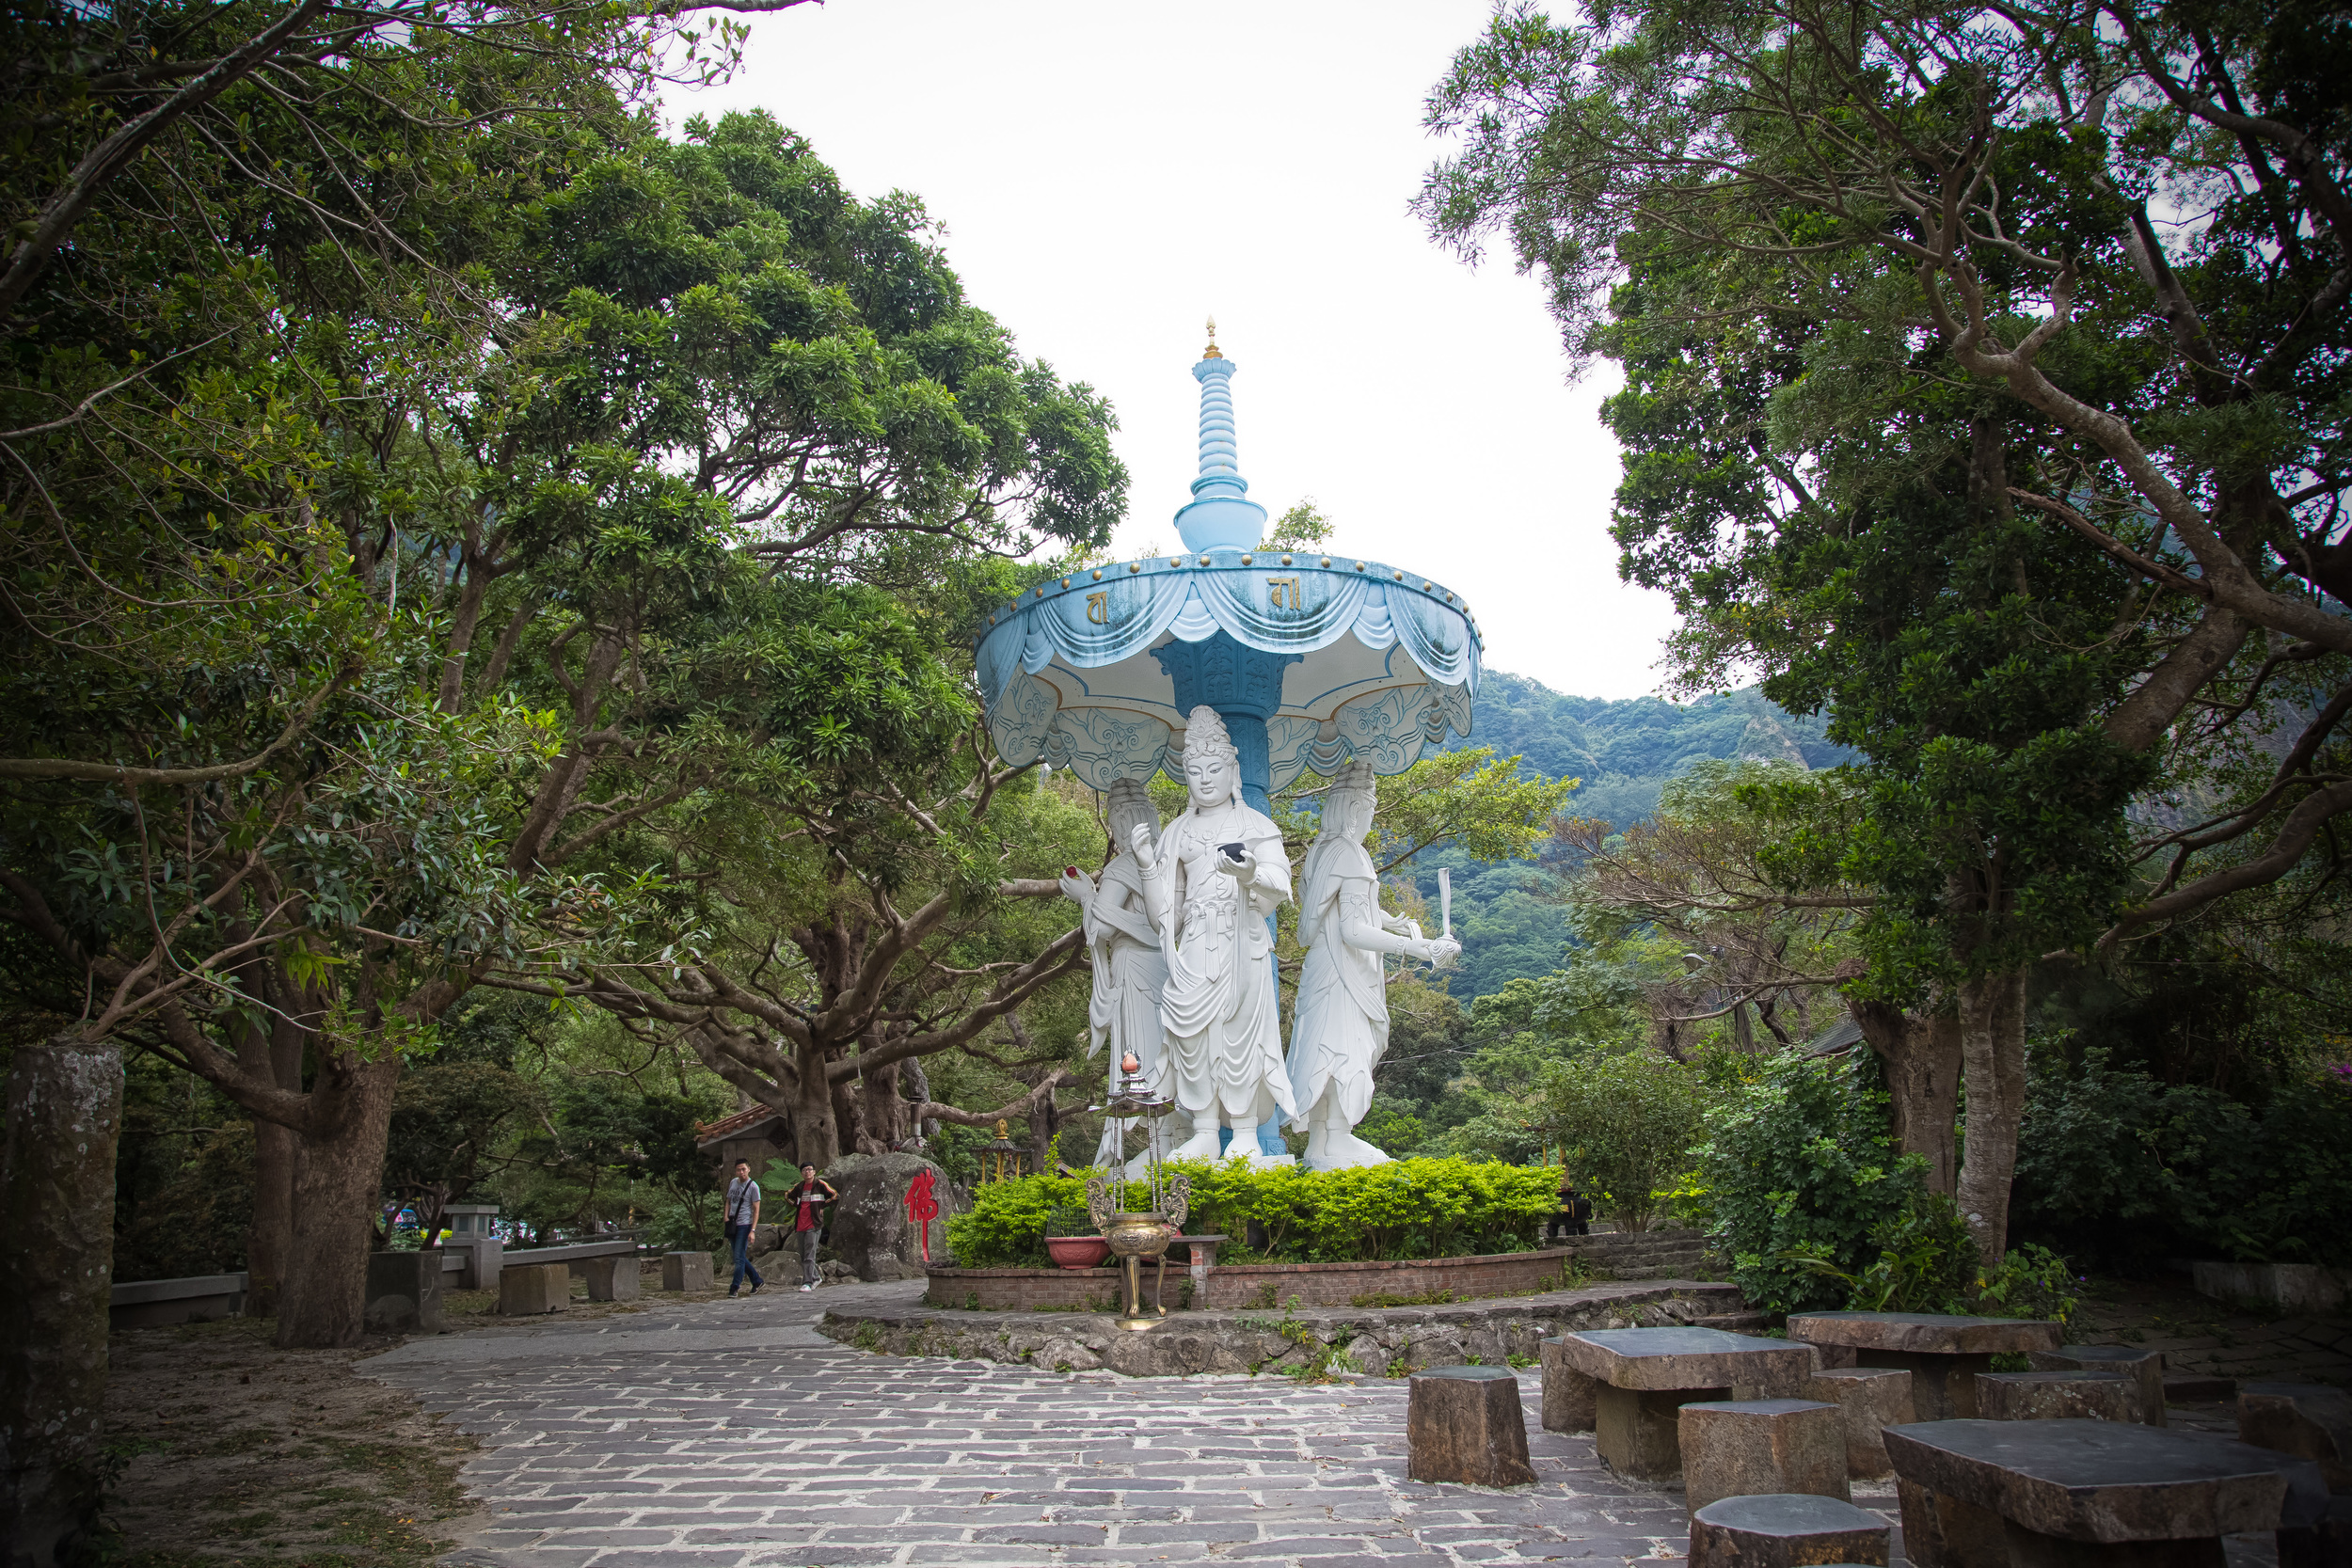 - A small park devoted to the Buddha Guanyin